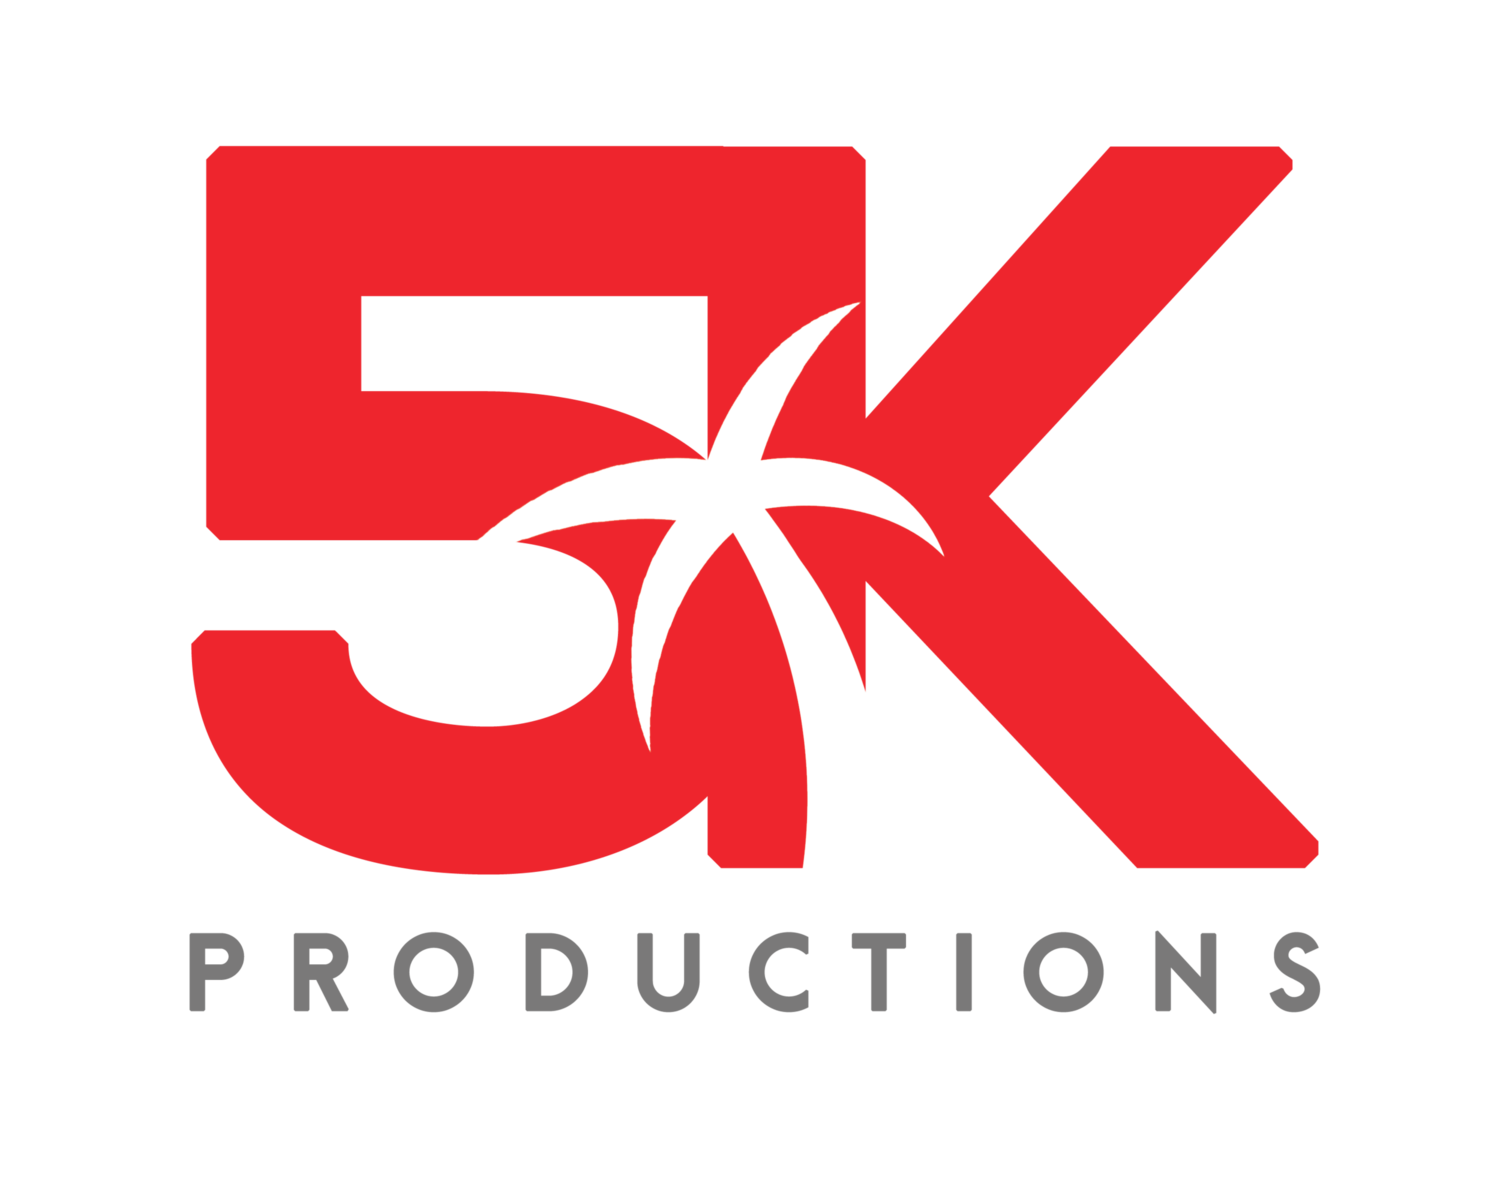 5K Productions